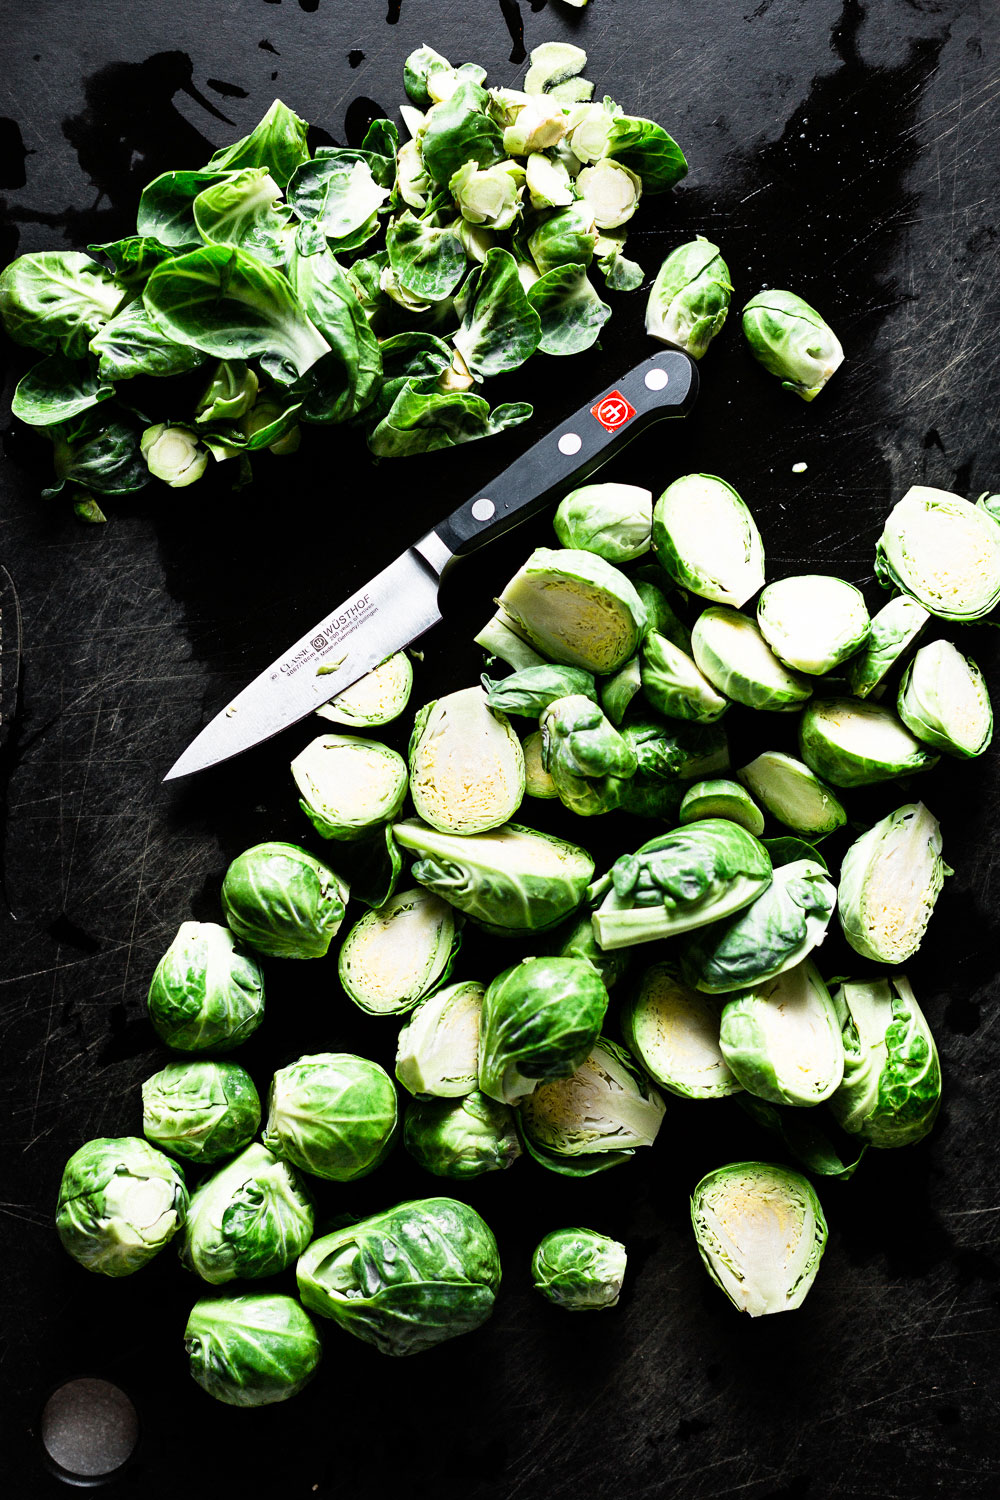 brussels sprouts cleaned, trimmed and halved